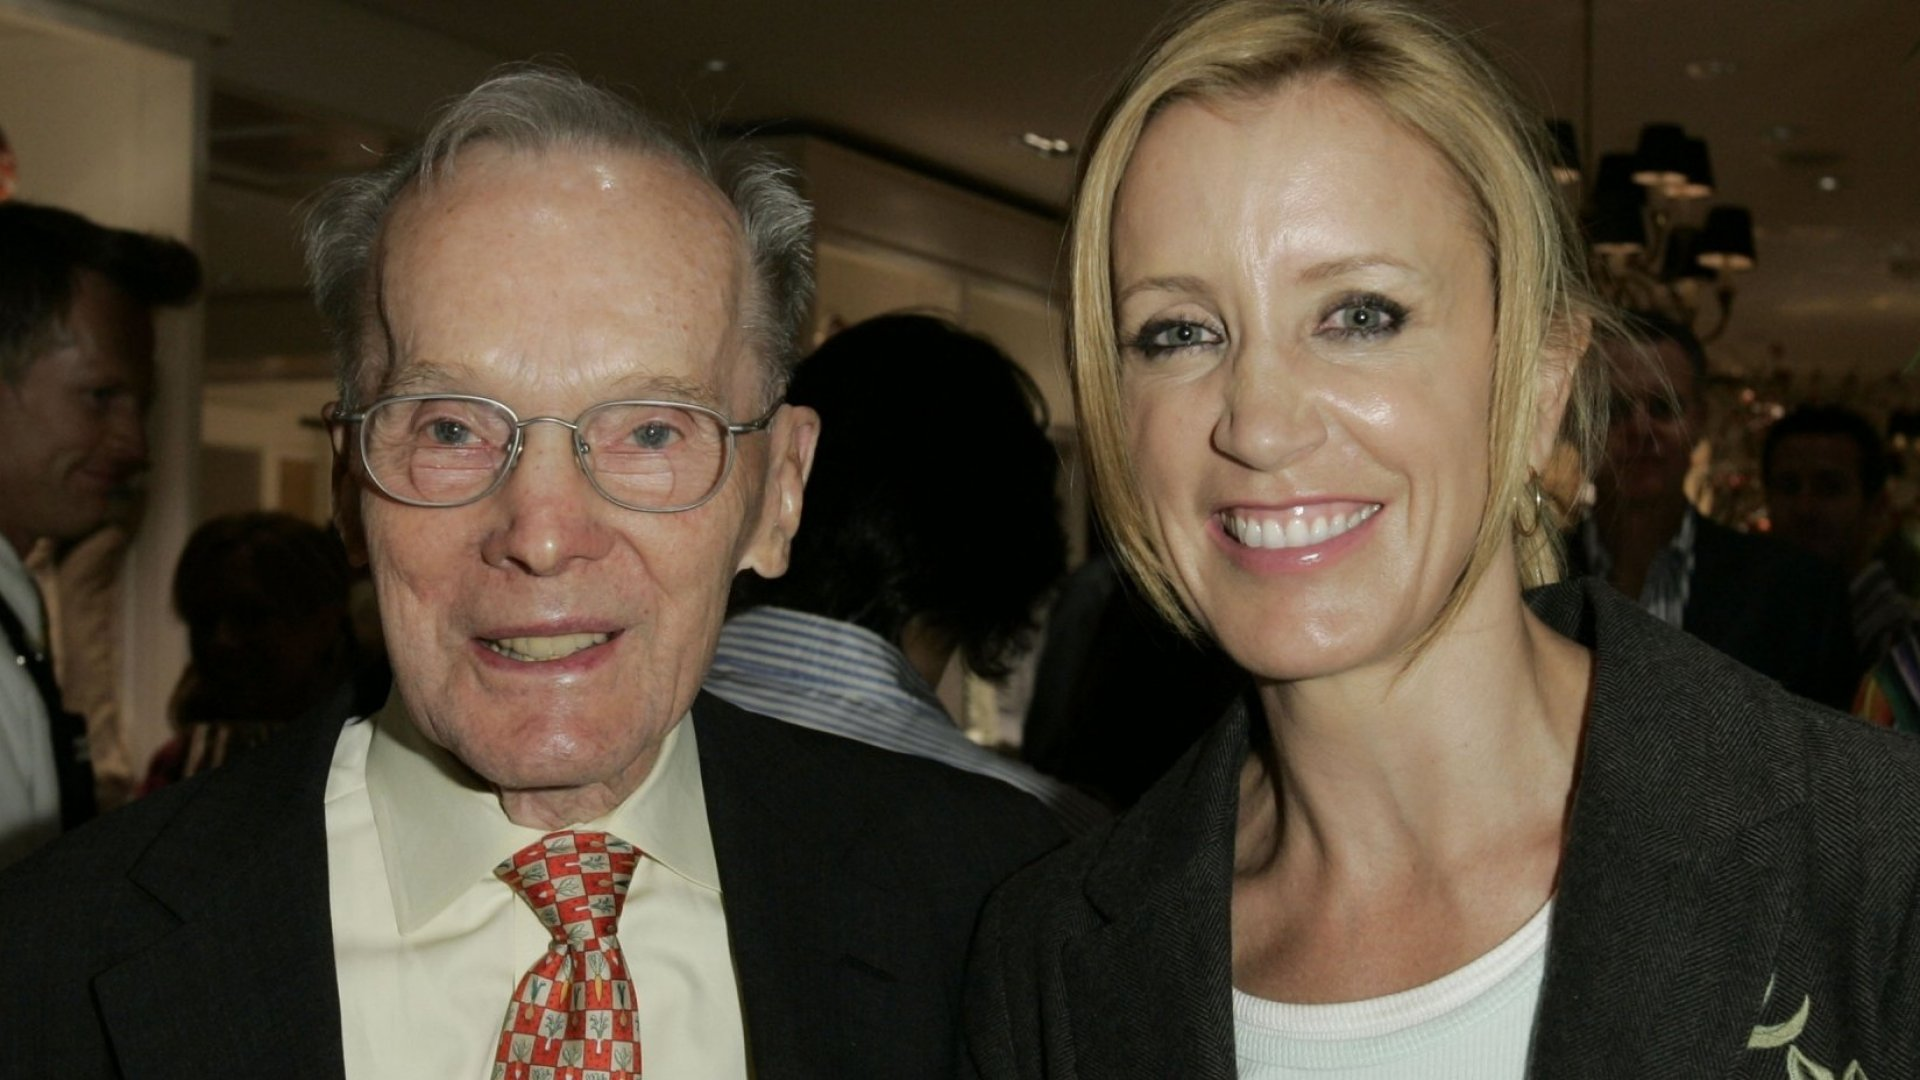 Williams-Sonoma founder Chuck Williams and actress Felicity Huffman.